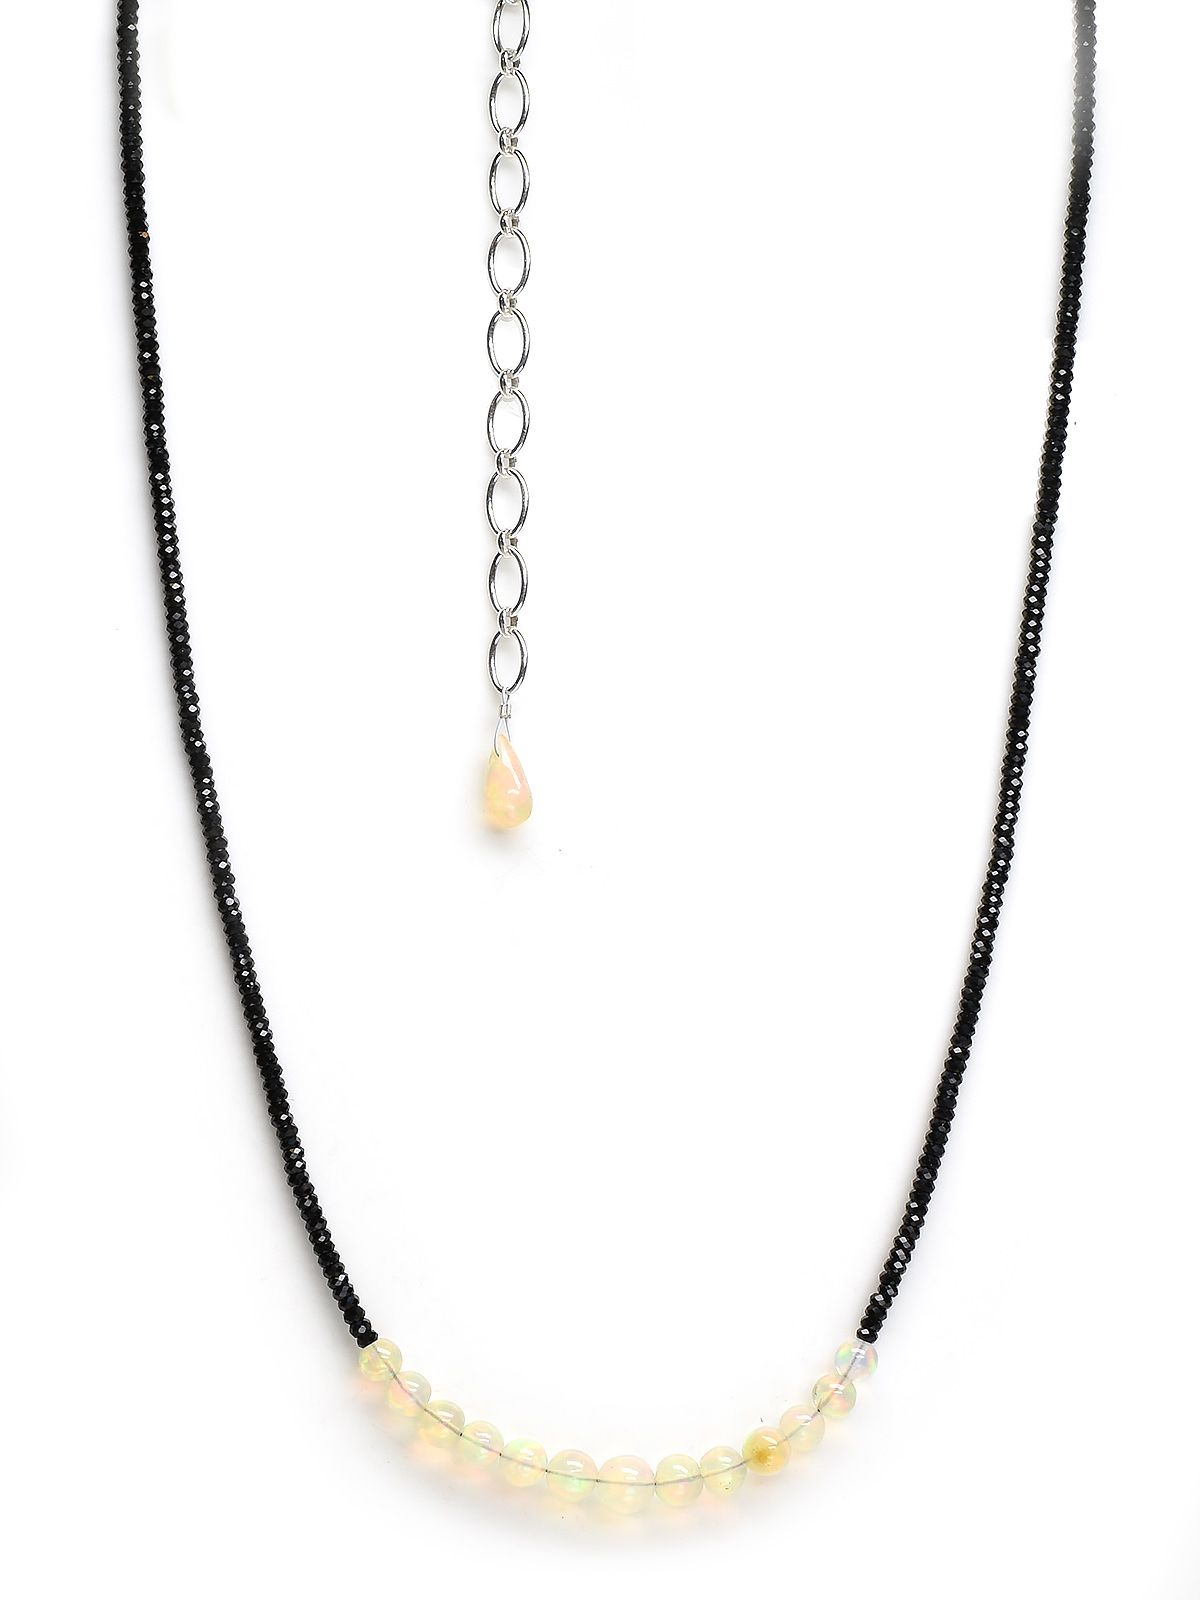 Black Spinel with Opal Bead Necklace